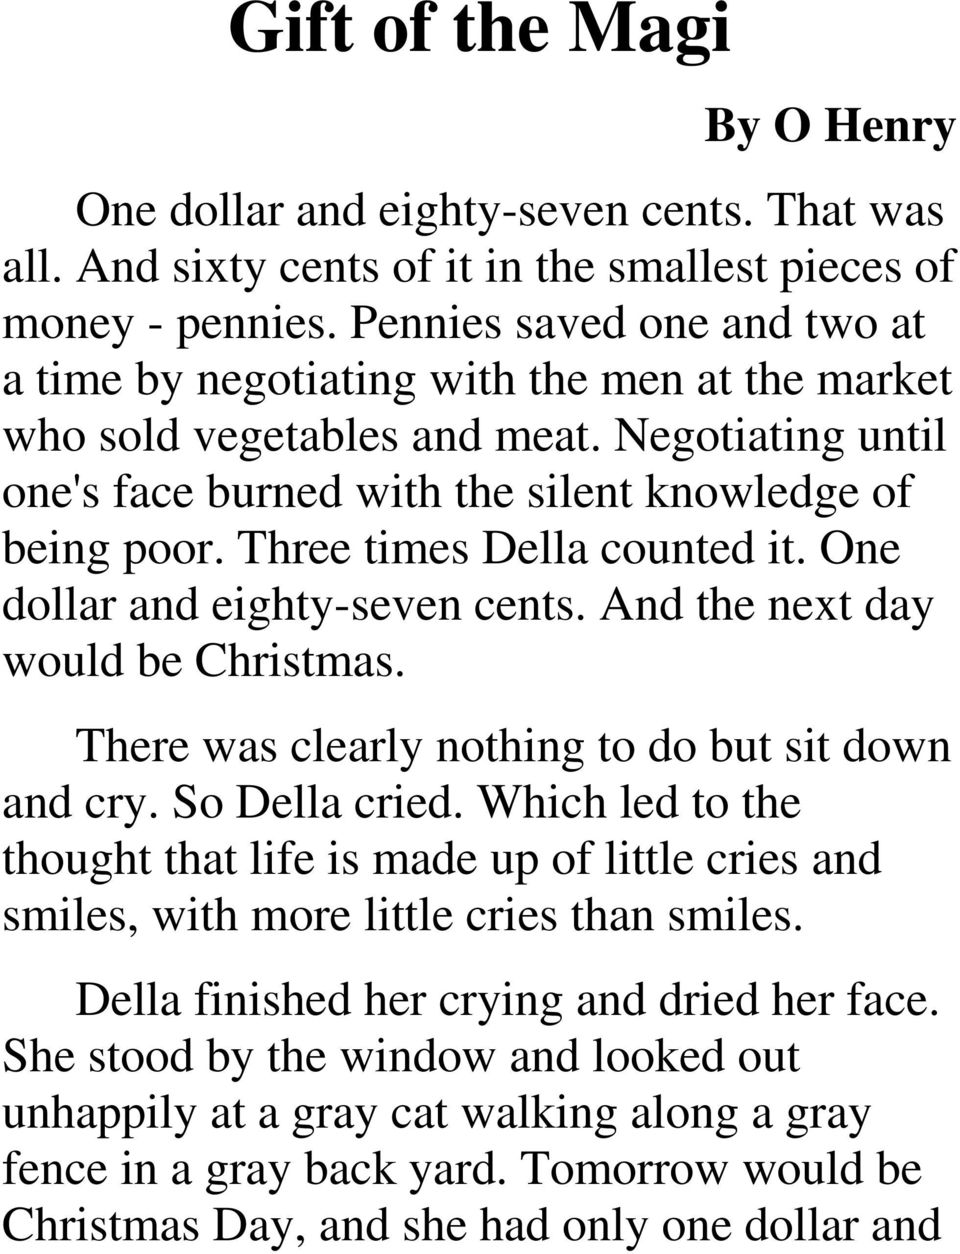 Three times Della counted it. One dollar and eighty-seven cents. And the next day would be Christmas. There was clearly nothing to do but sit down and cry. So Della cried.